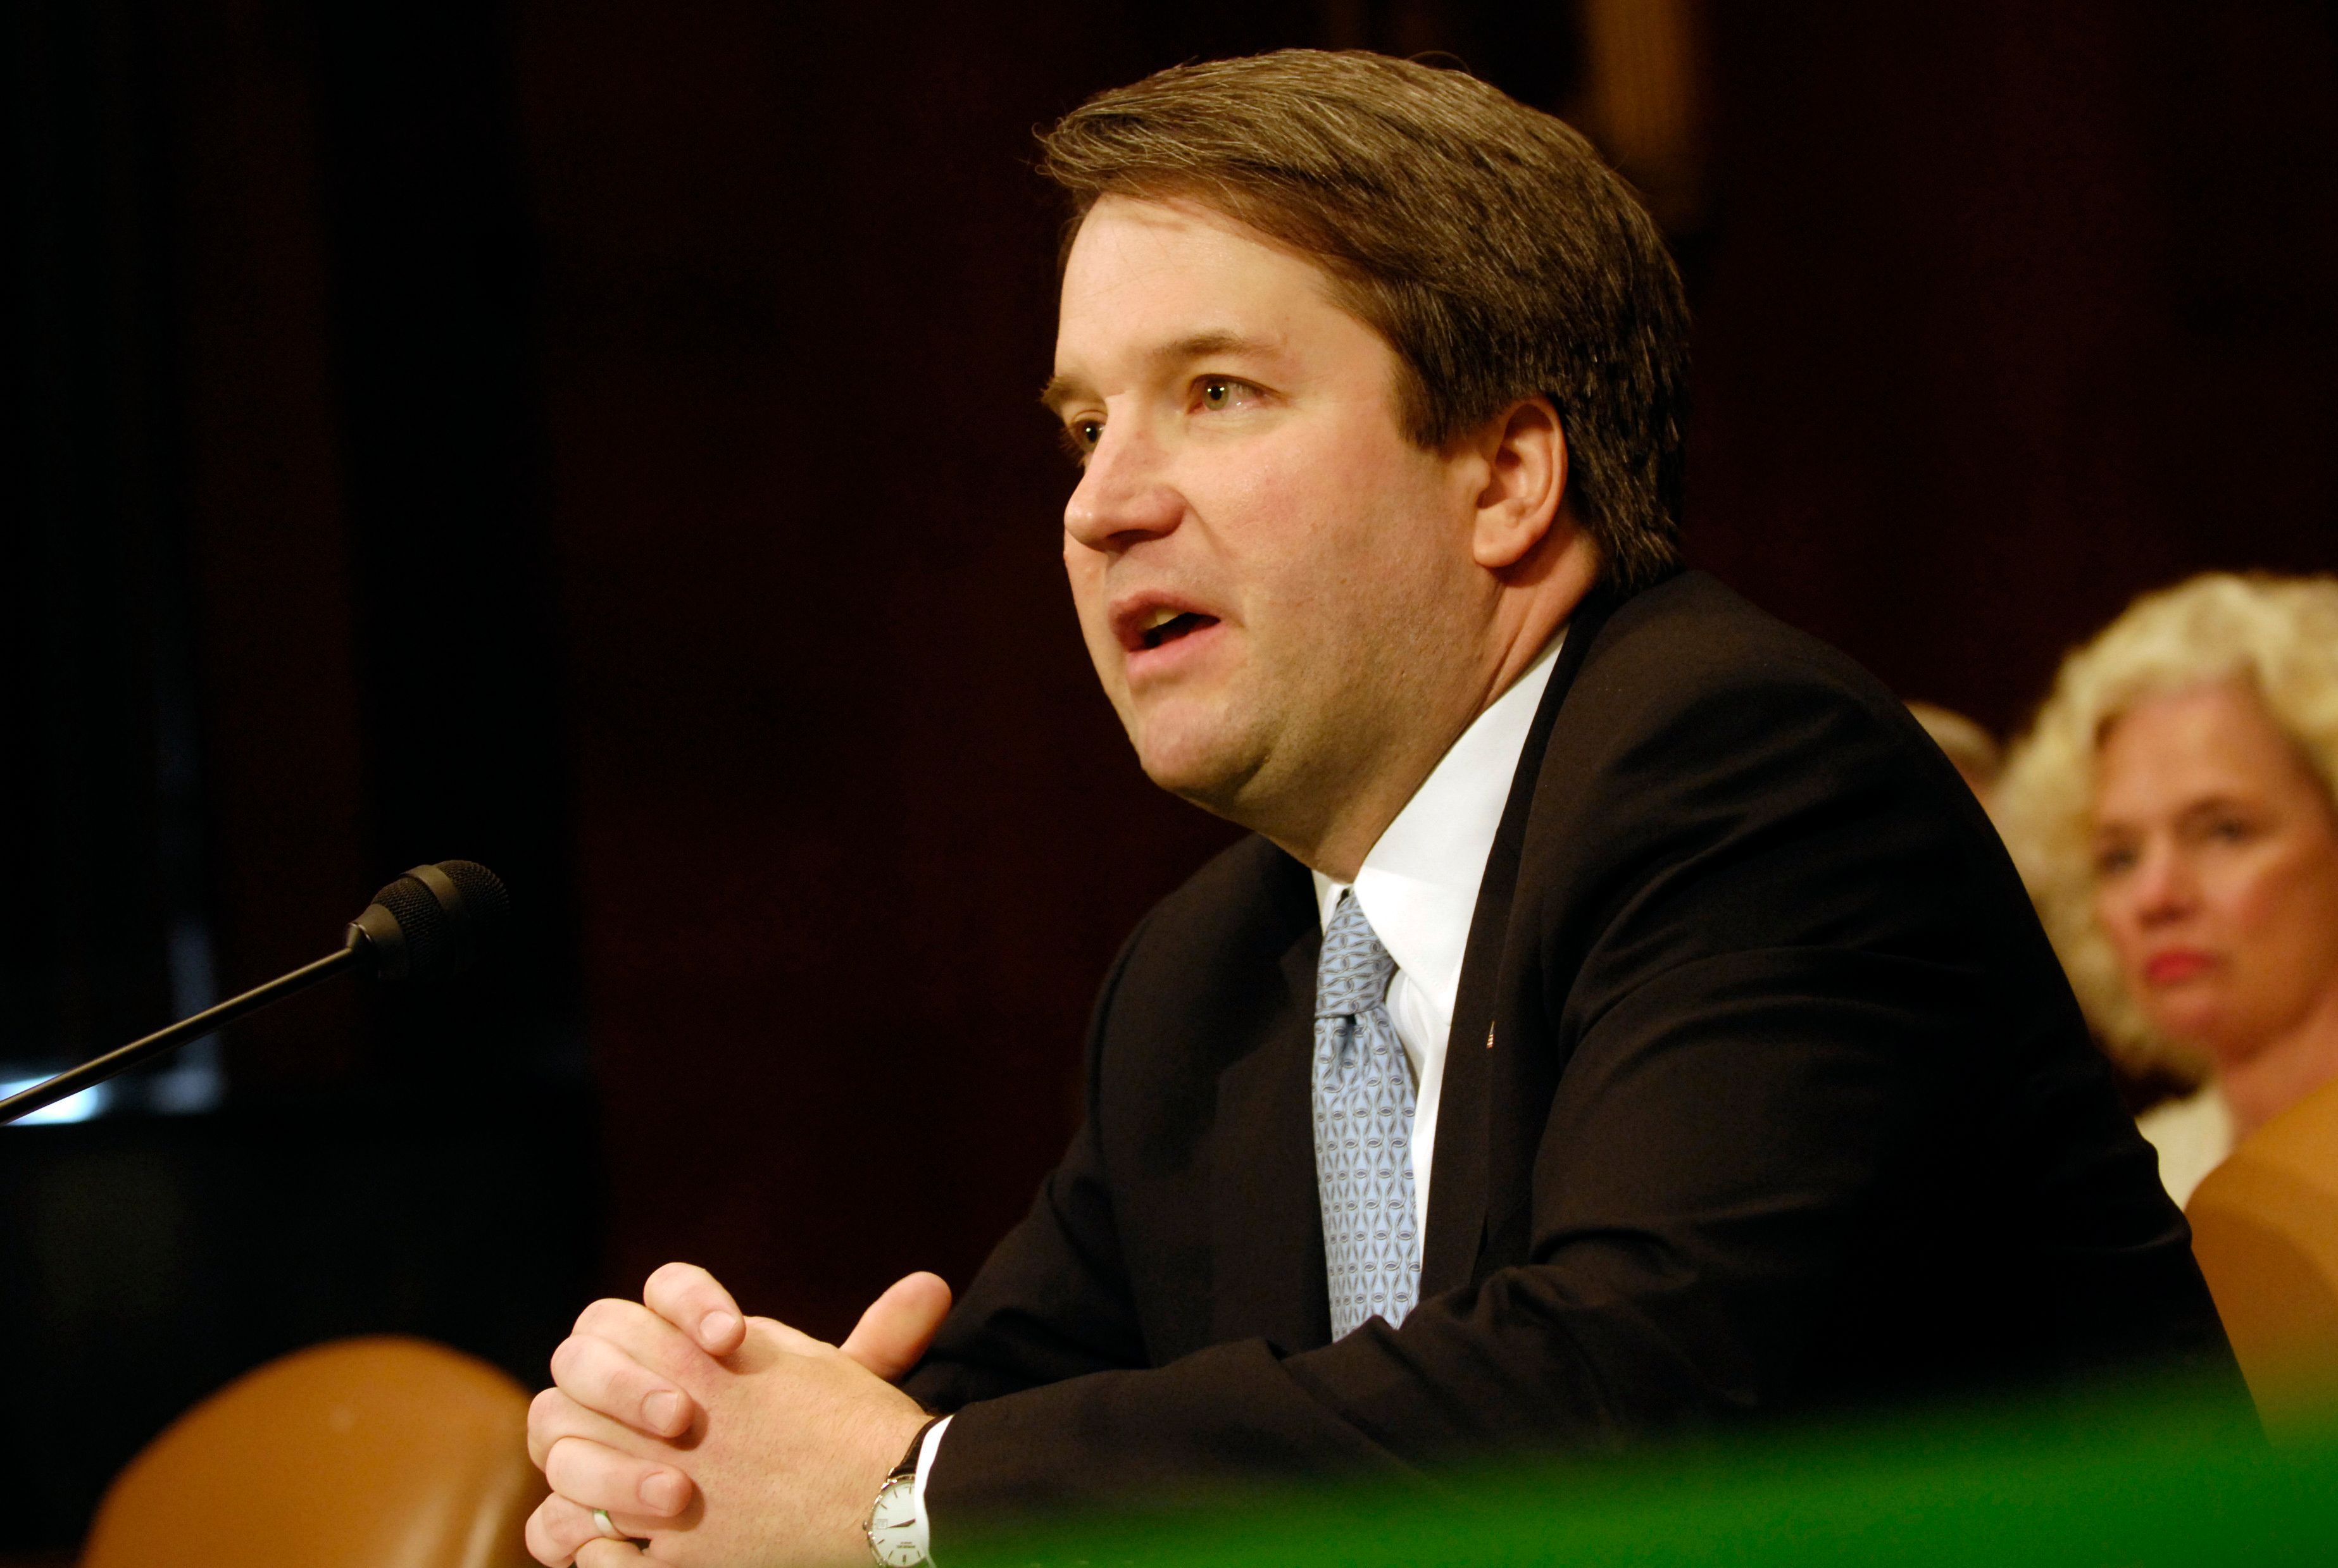 Brett Kavanaugh testifies at a Senate Judiciary Committee hearing on his nomination to be a federal circuit